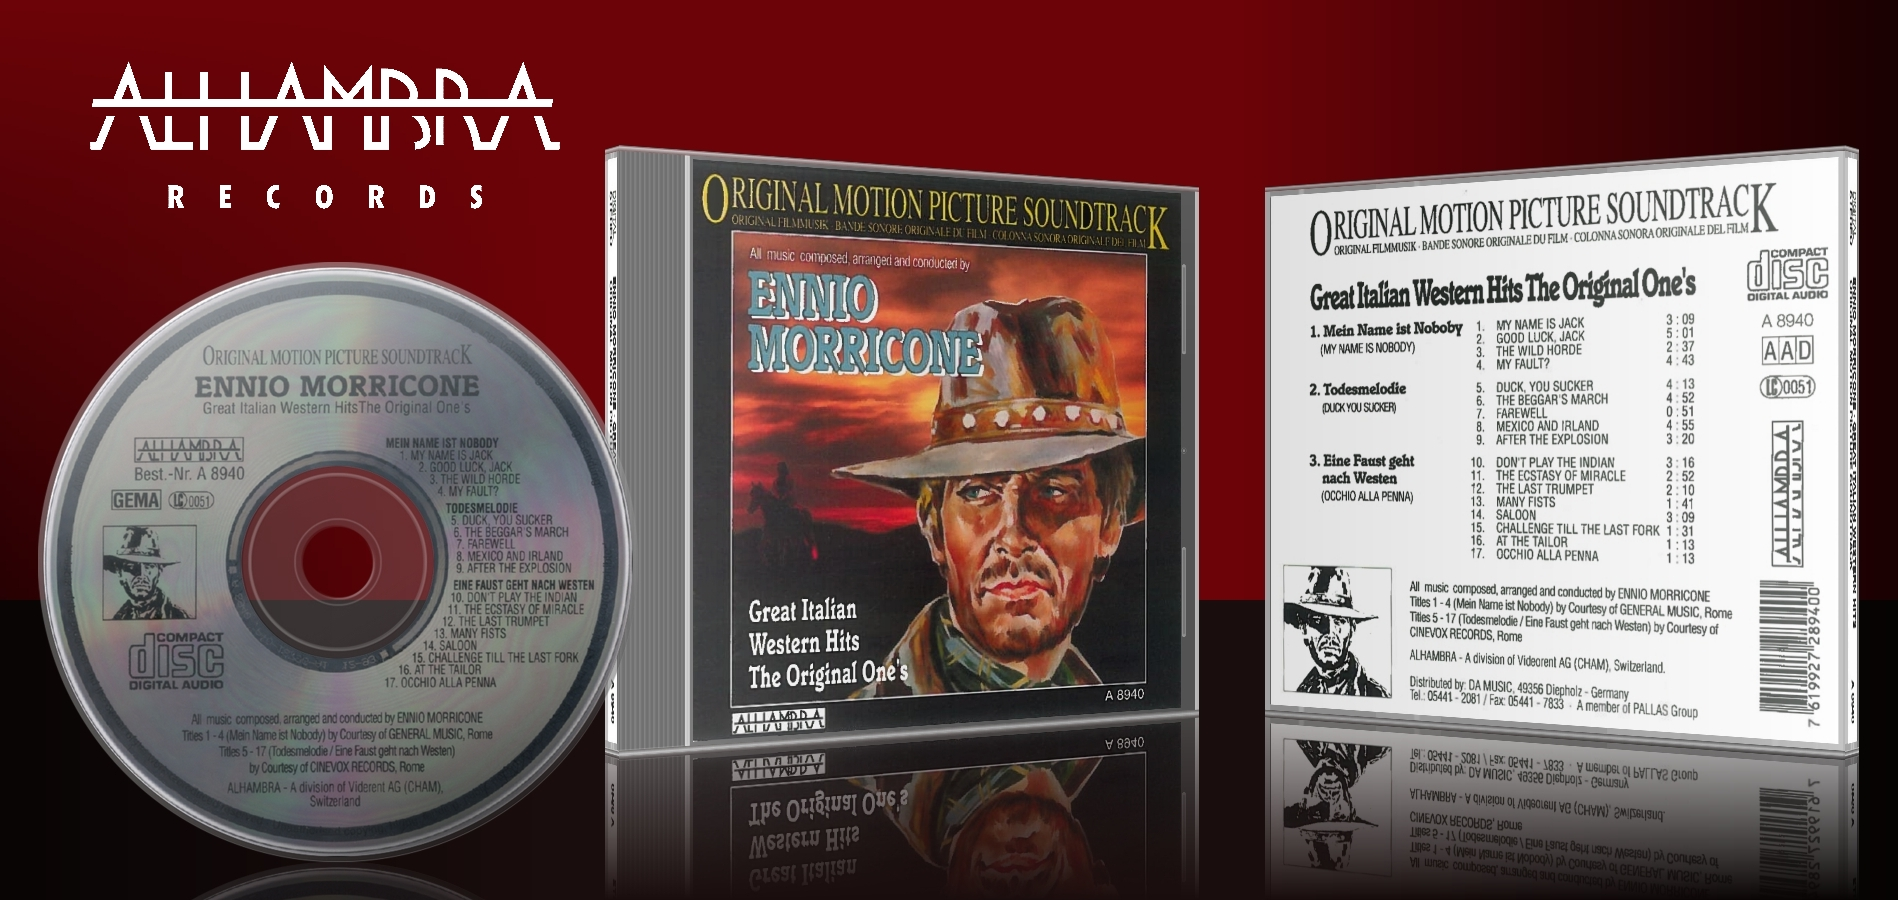 Ennio Morricone – Great Italian Western Hits: The Original One's